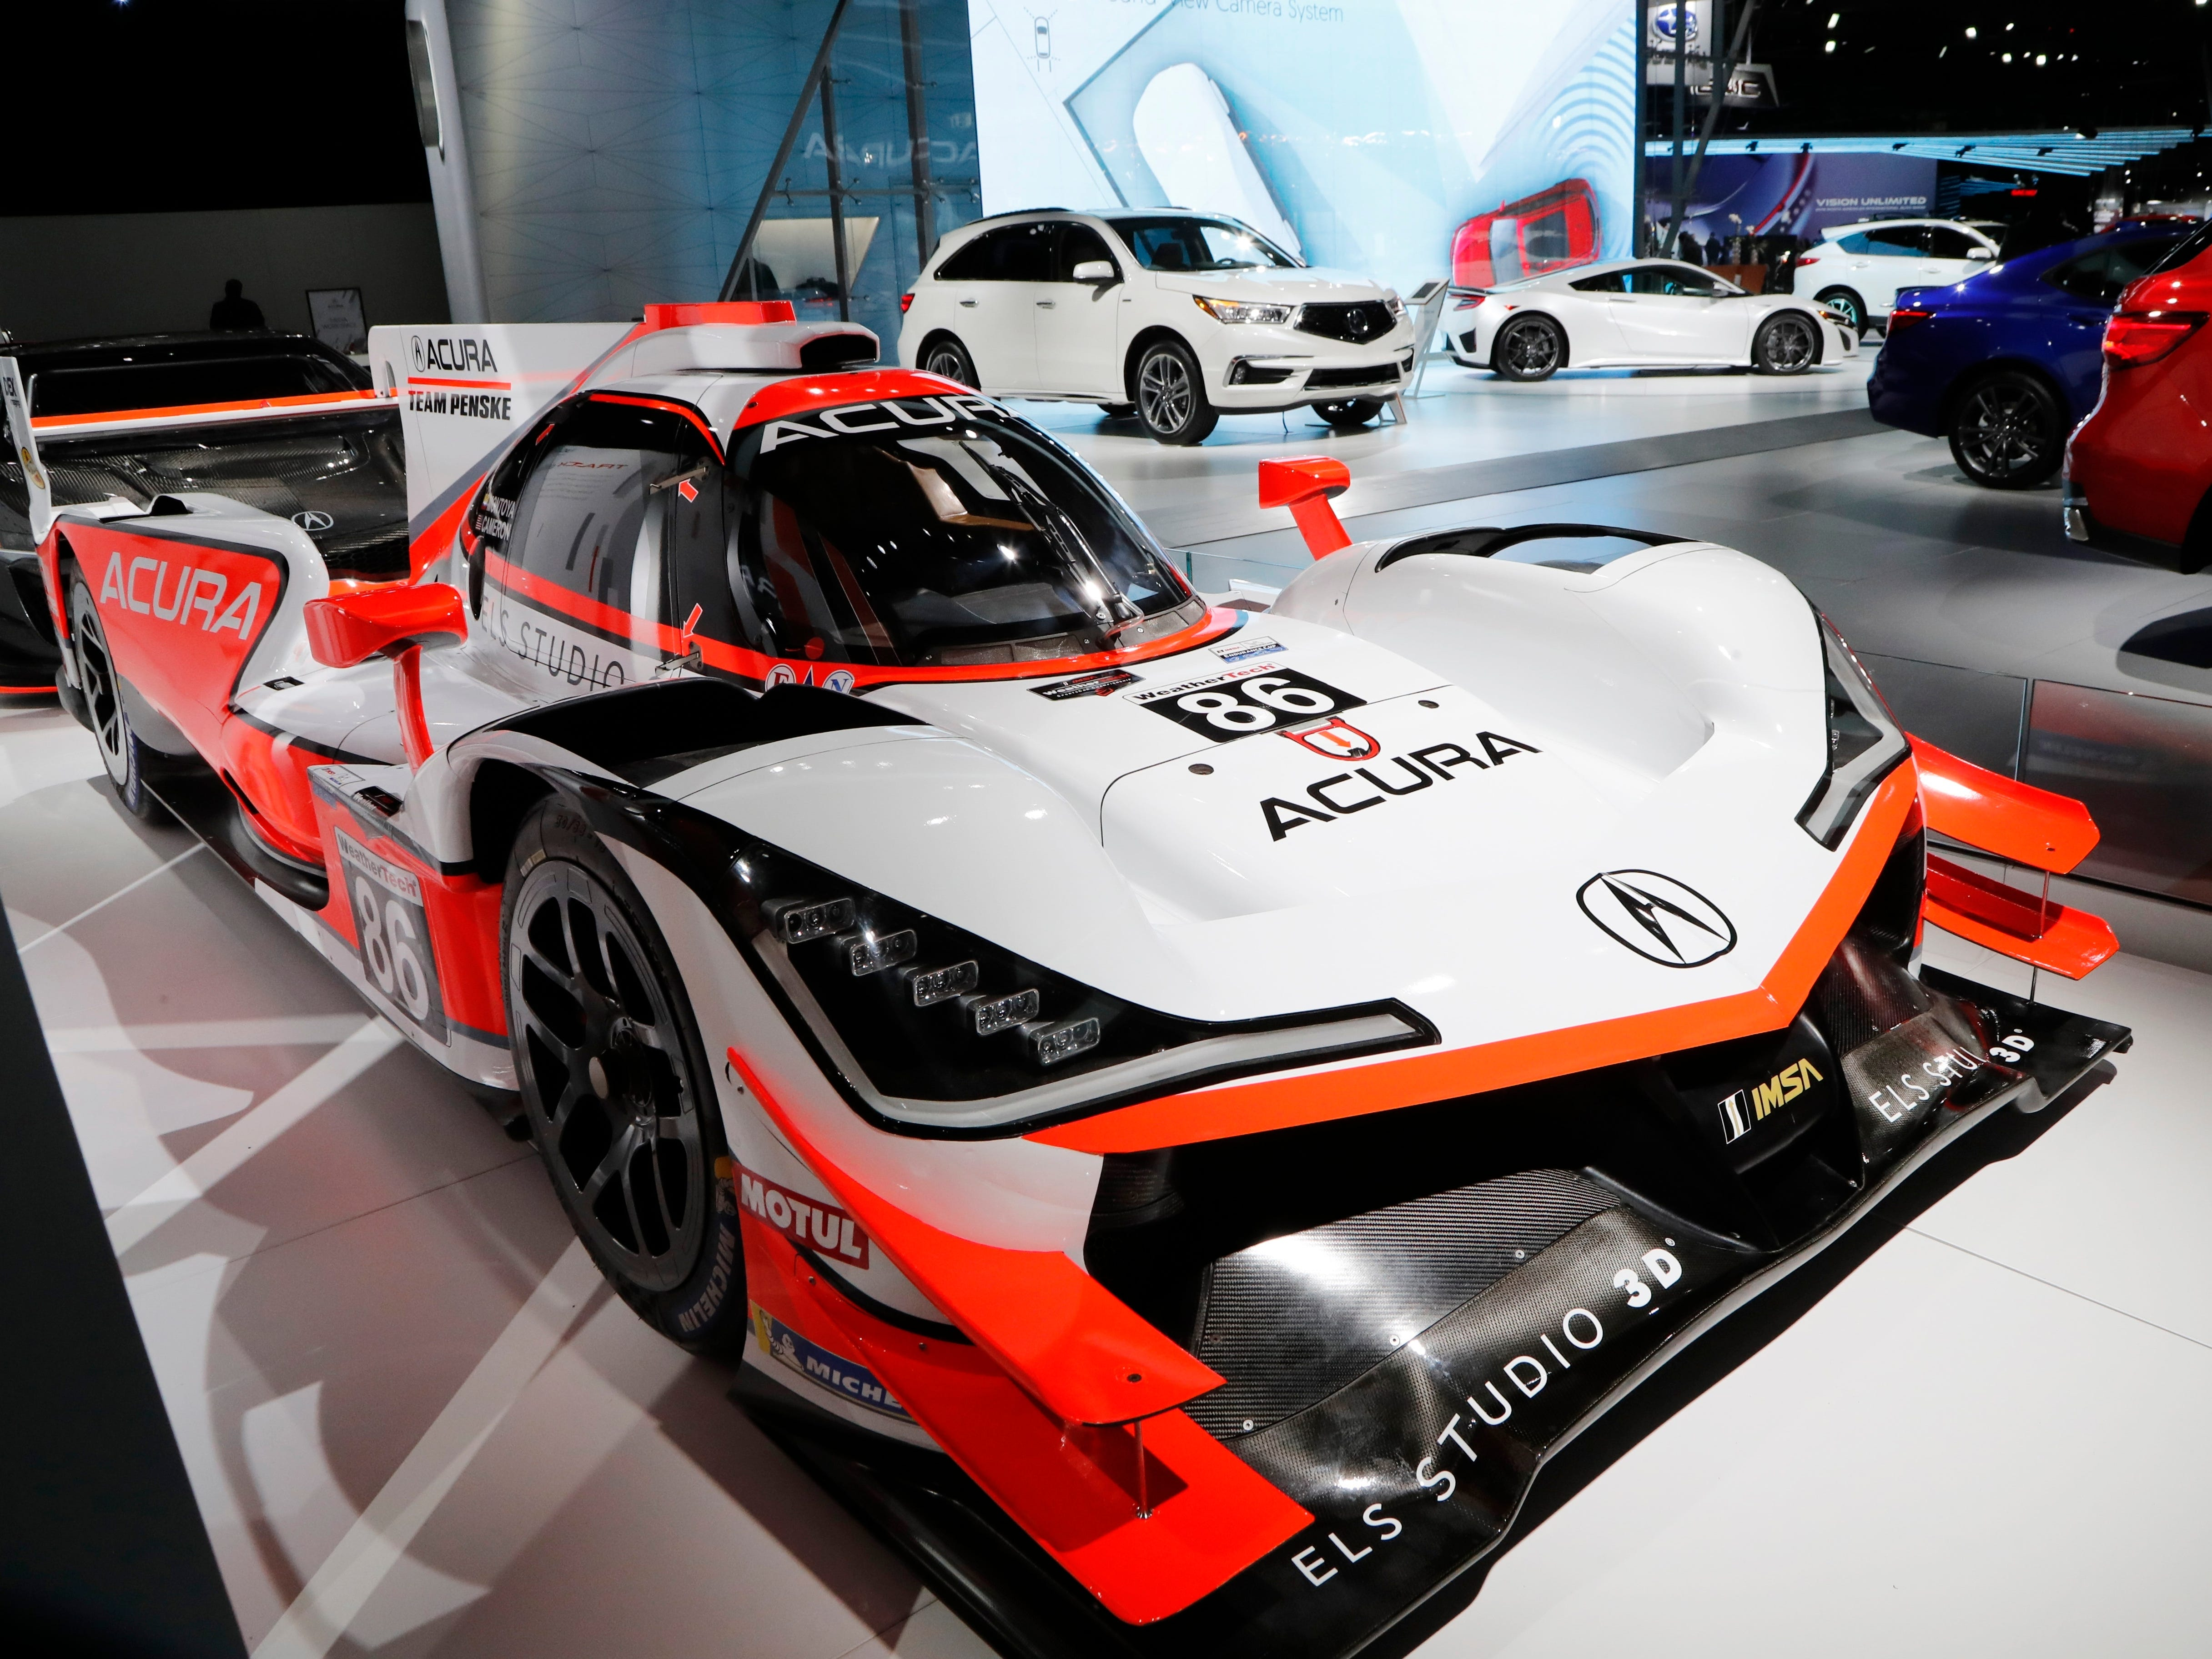 The Acura ARX -05 prototype racing sports car.